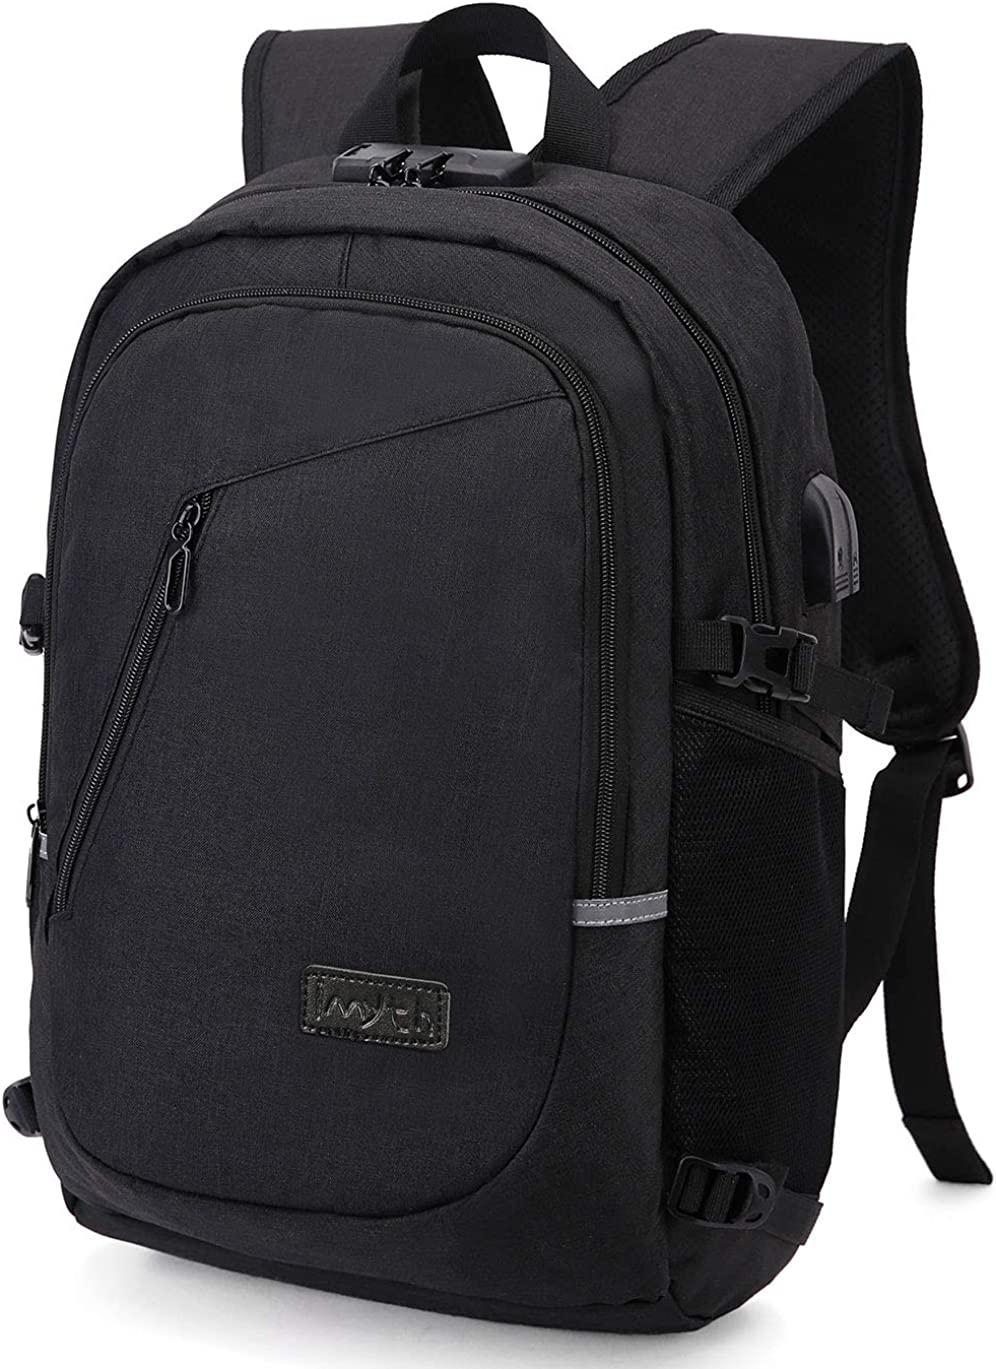 Casual Laptop Backpack, Anti Theft Waterproof With USB Charging Port, Slim Lightweight Travel backpack Fits 15.6 inch